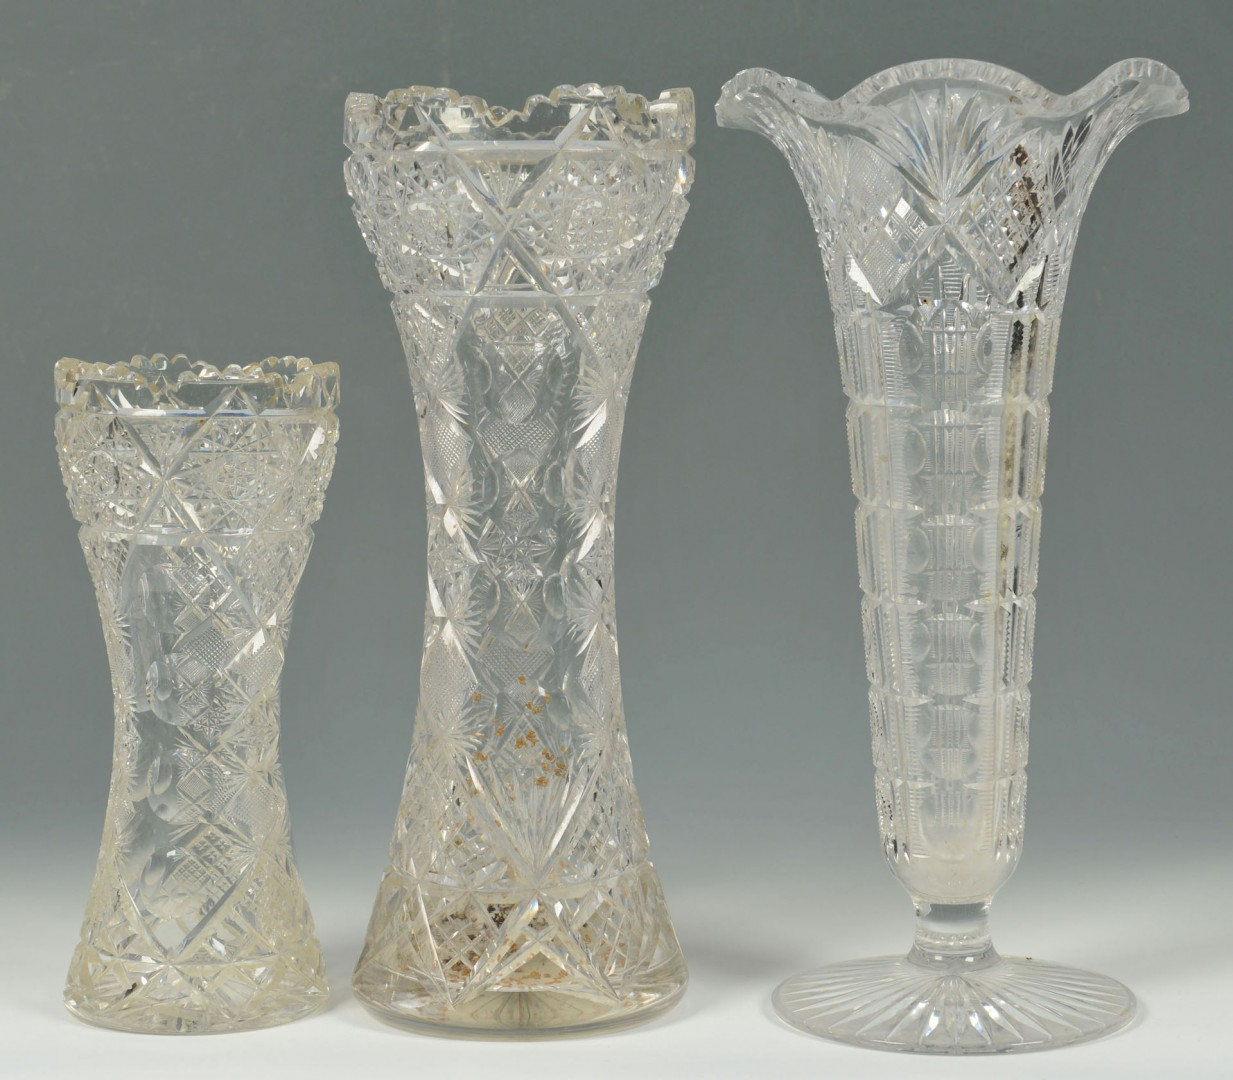 Grouping of 10 cut glass items